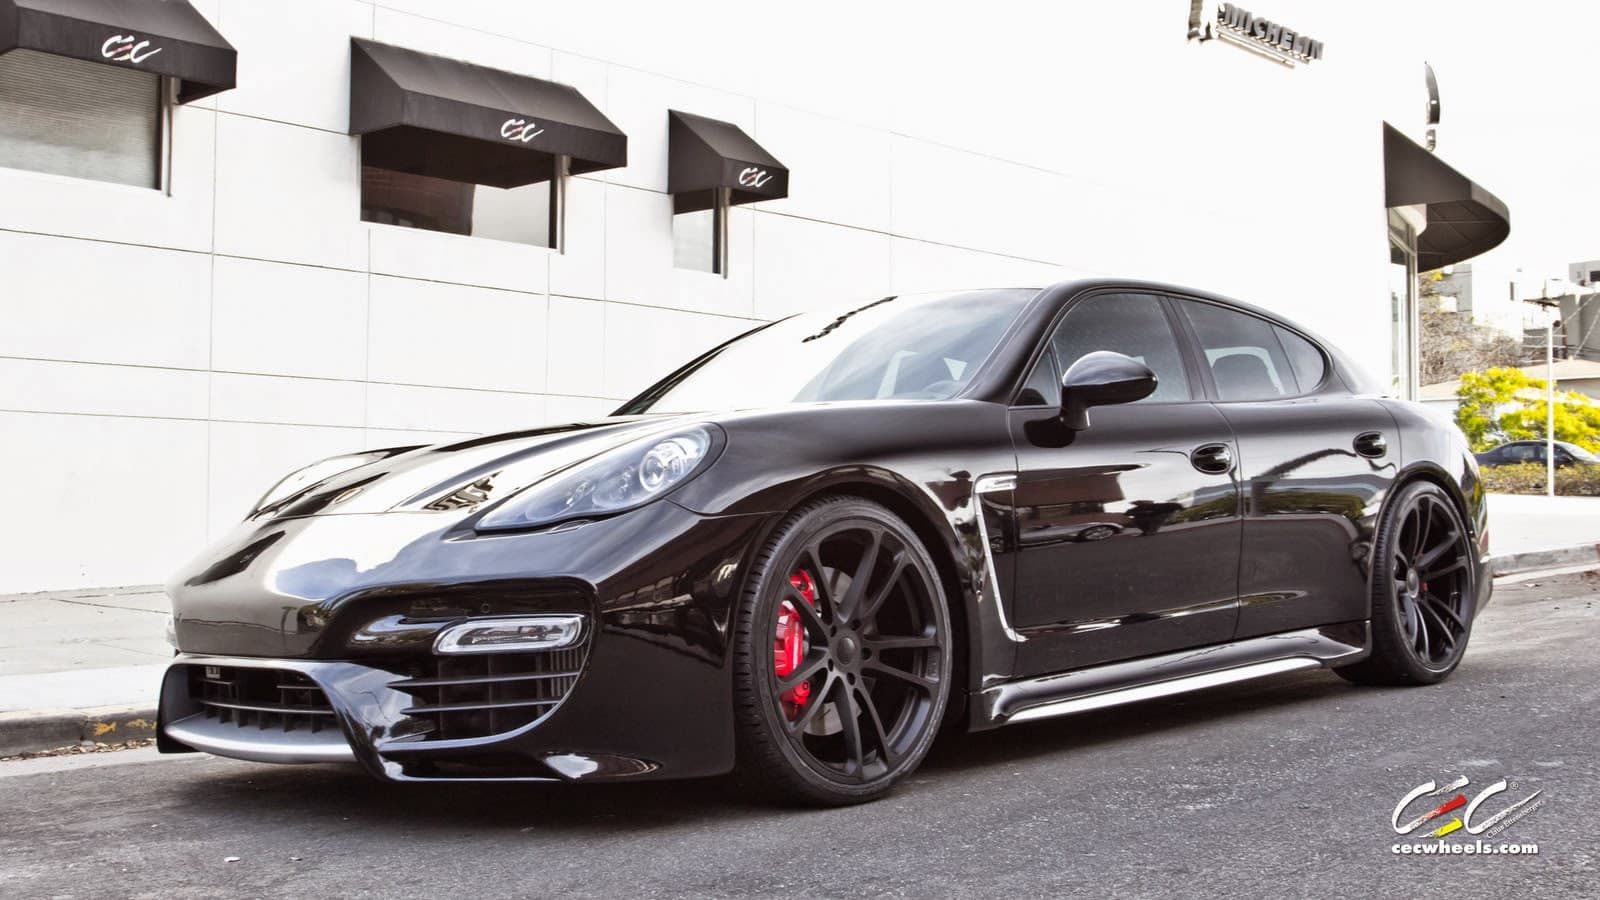 Porsche Panamera Turbo S 2017 Wallpapers Hd White Black Red